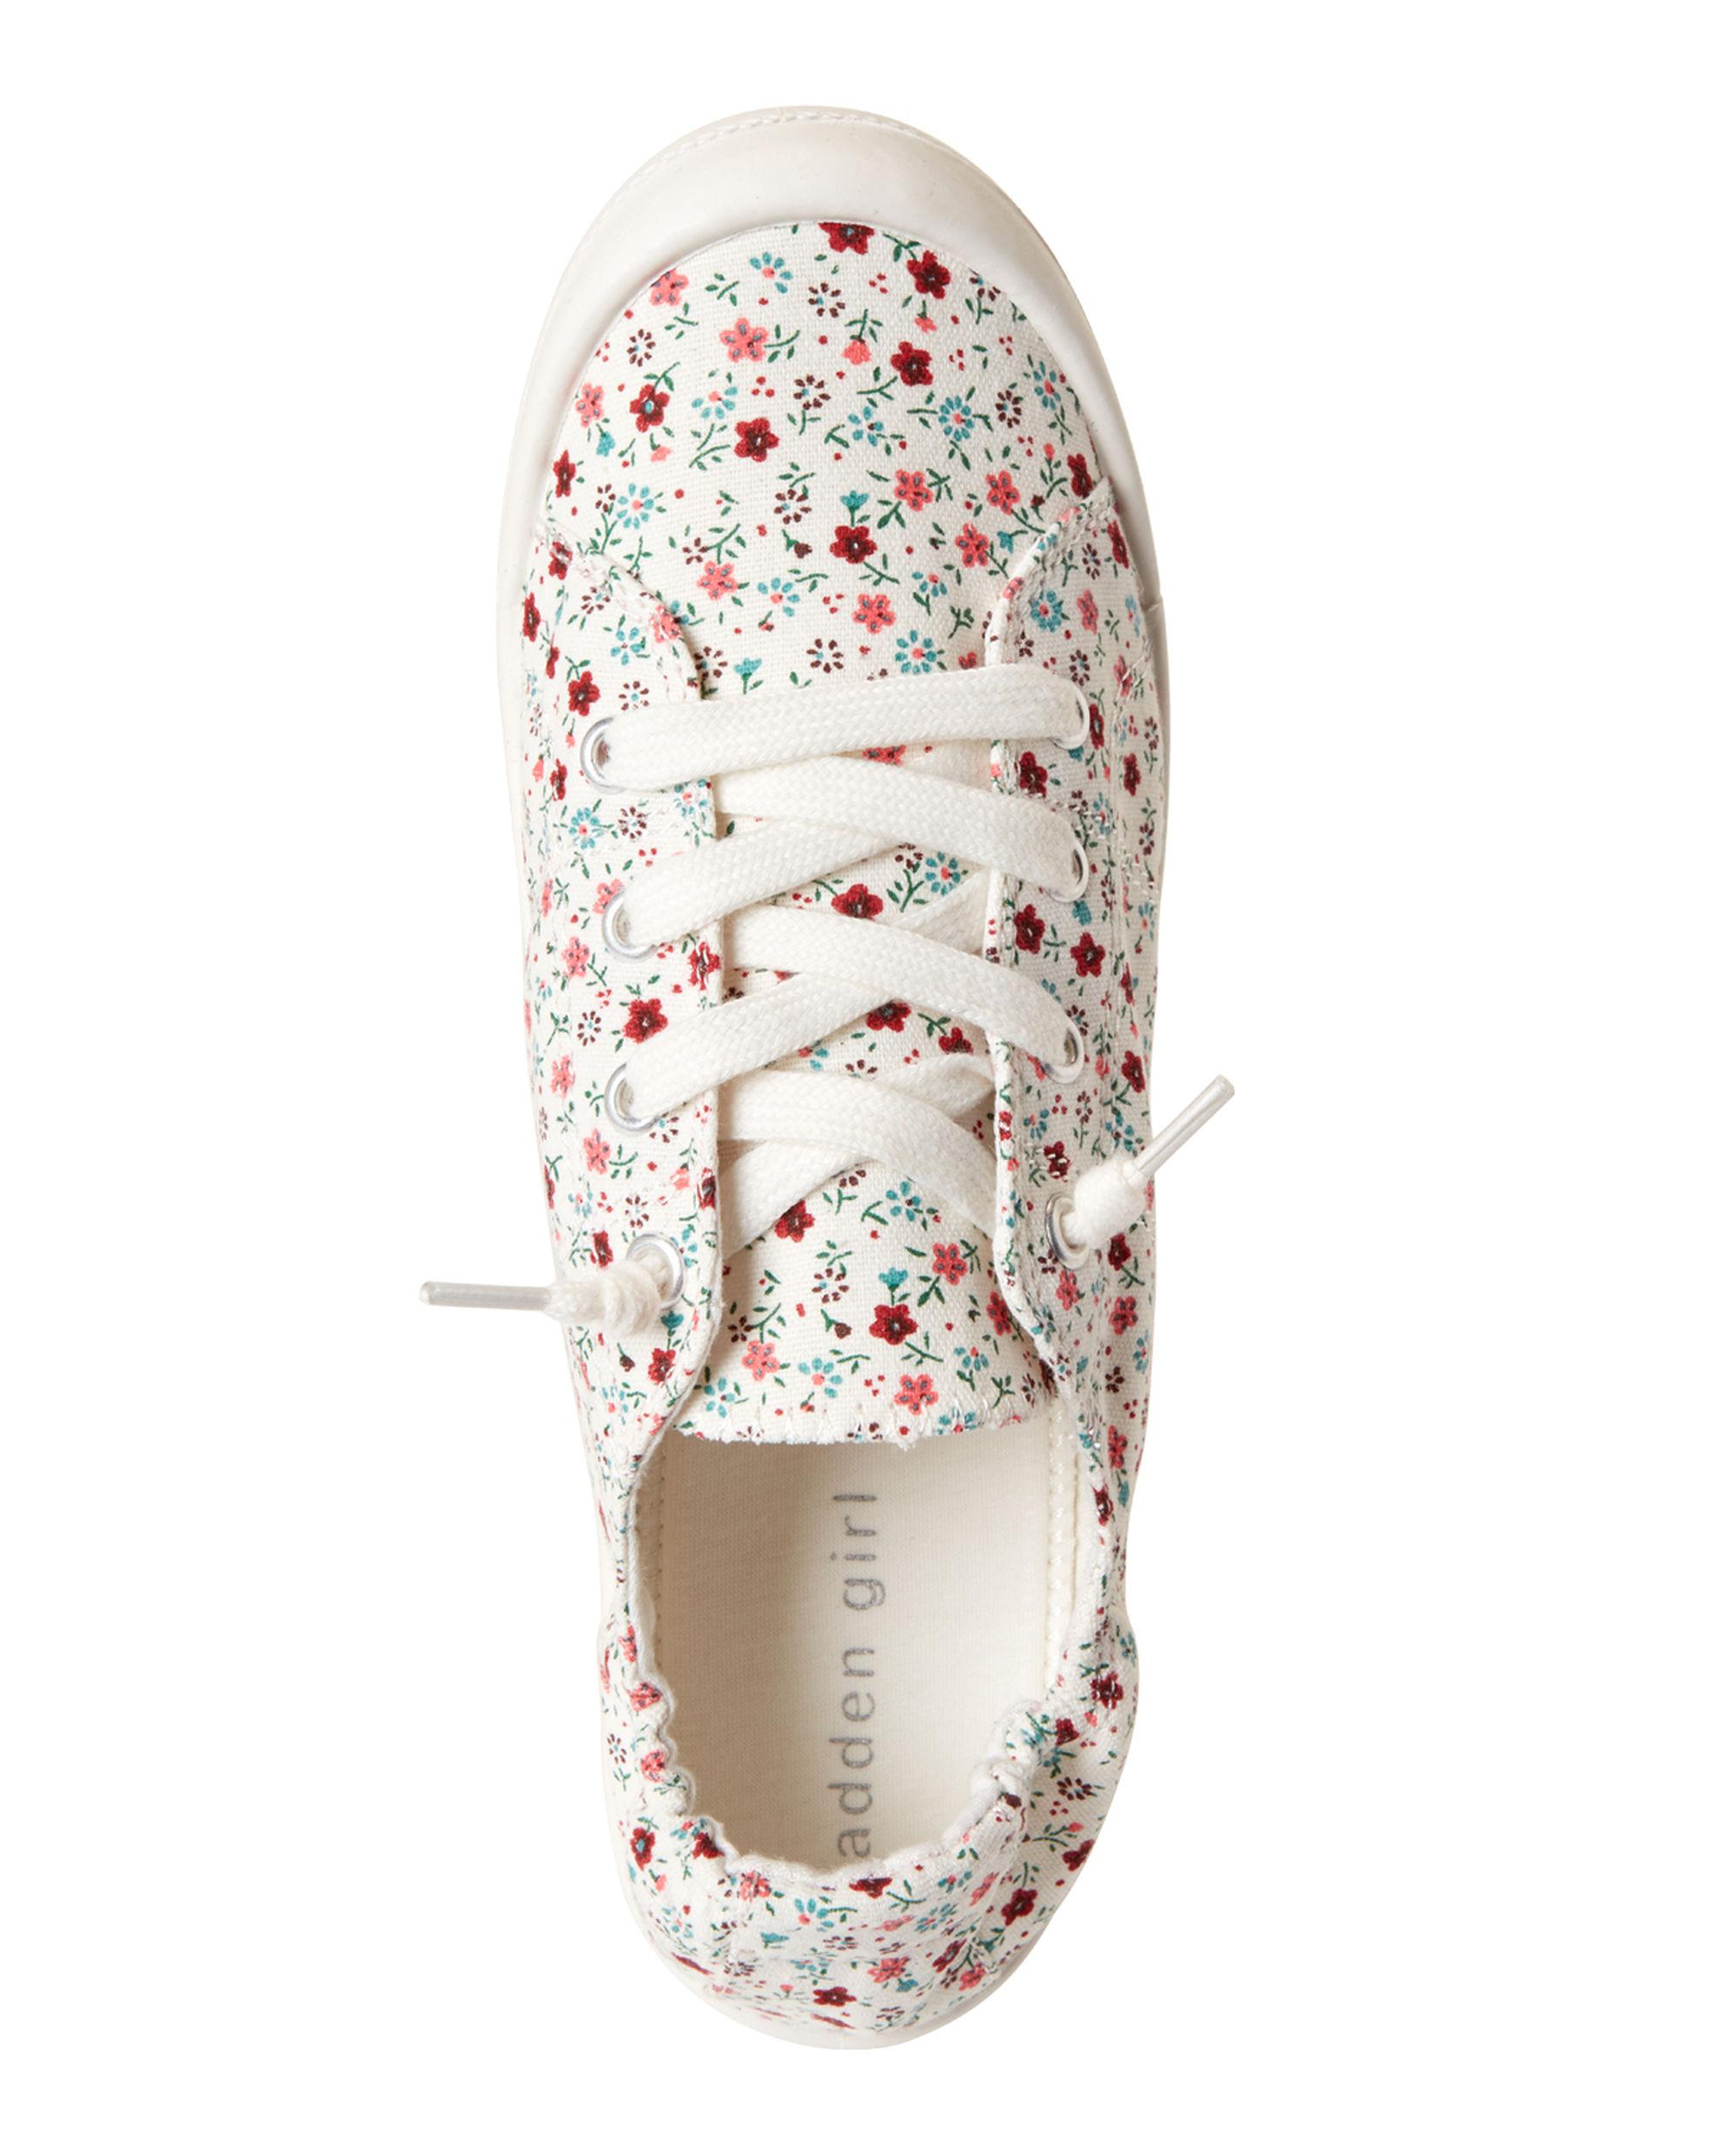 5d940dab41c Madden Girl - Multicolor Floral Baailey Canvas Slip-on Sneakers - Lyst.  View fullscreen